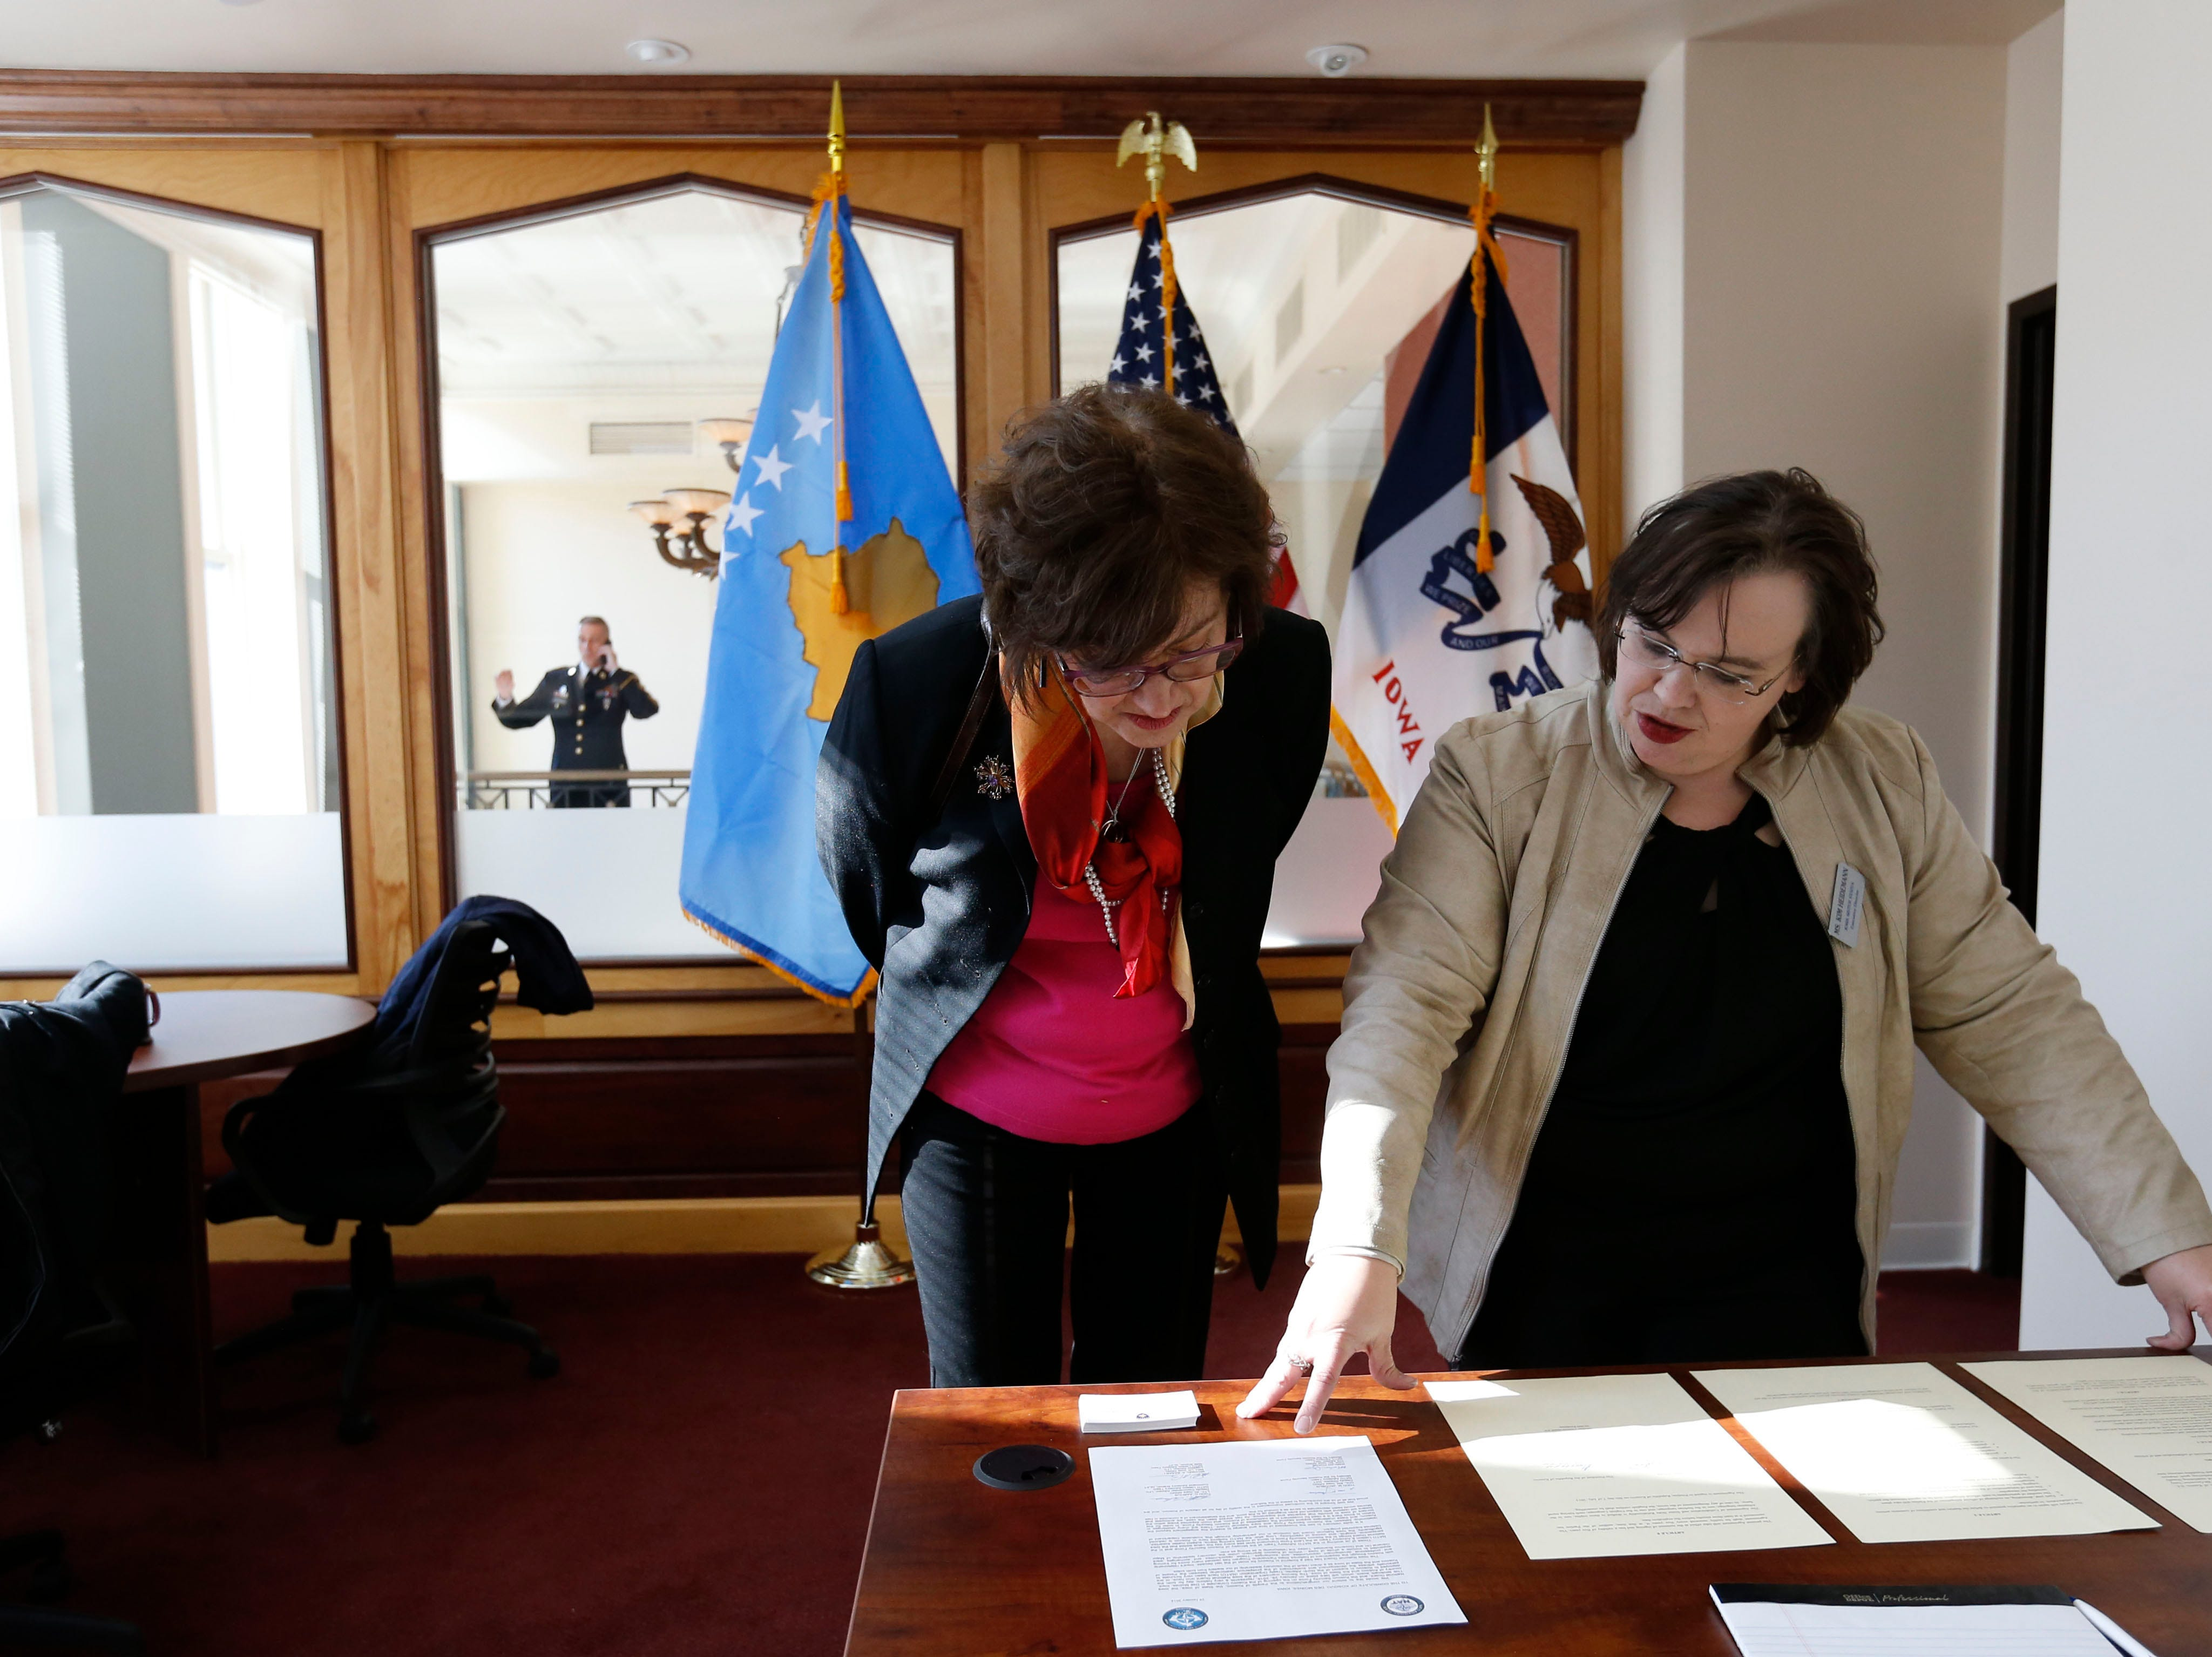 Deborah Loers (center) and Kim Heidemann, director of the Iowa Sister State program, look over the official documents making the agreement possible Friday, Jan 29, 2016, during a reception for the opening of the Consulate of the Republic of Kosovo inside The Saddlery Building on Court Avenue in Des Moines.